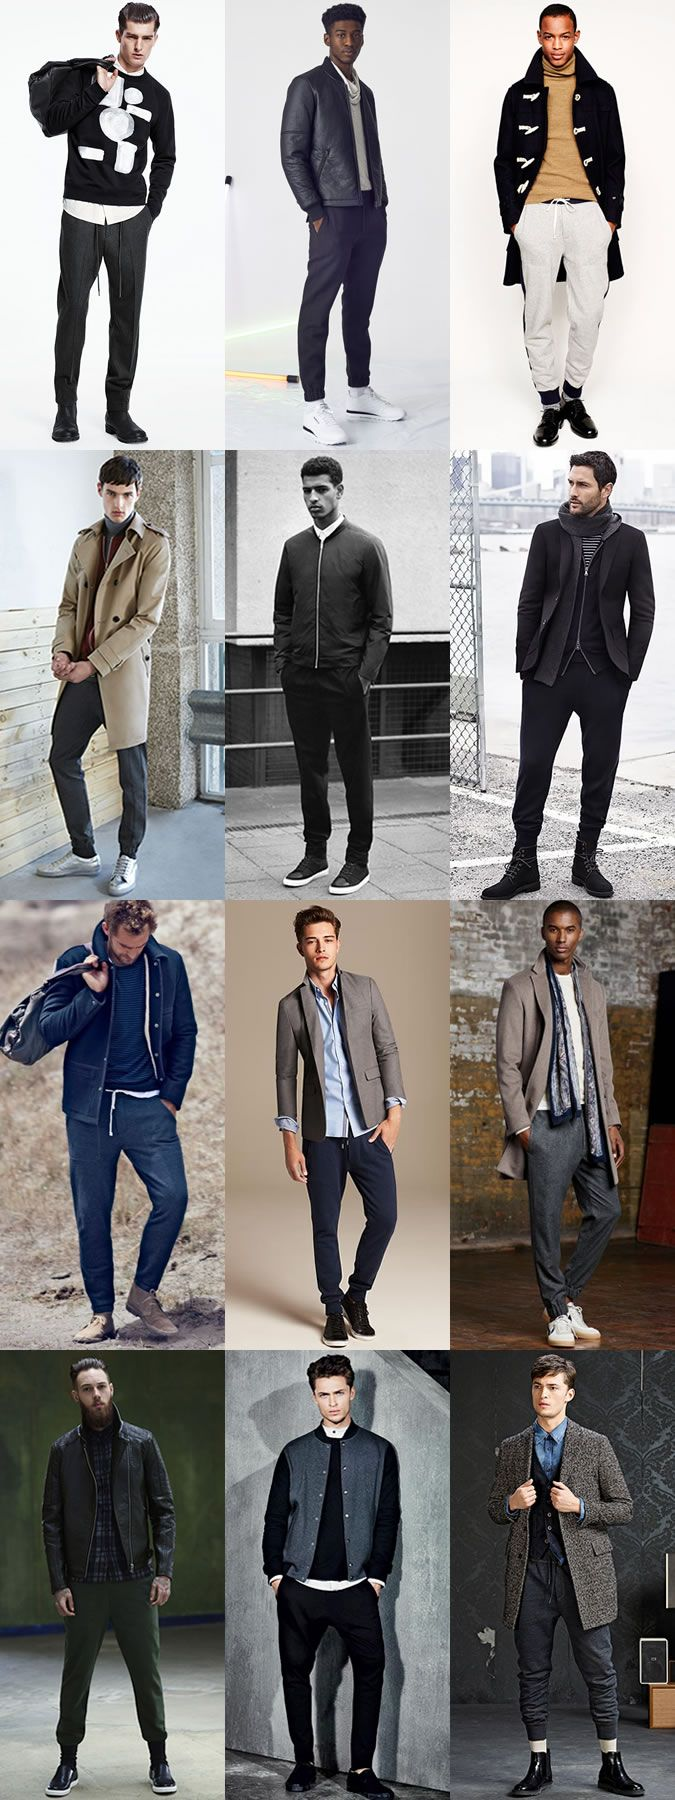 Men's Slimline and Tapered Jogging Bottoms/Sweatpants Outfit Inspiration Lookbook